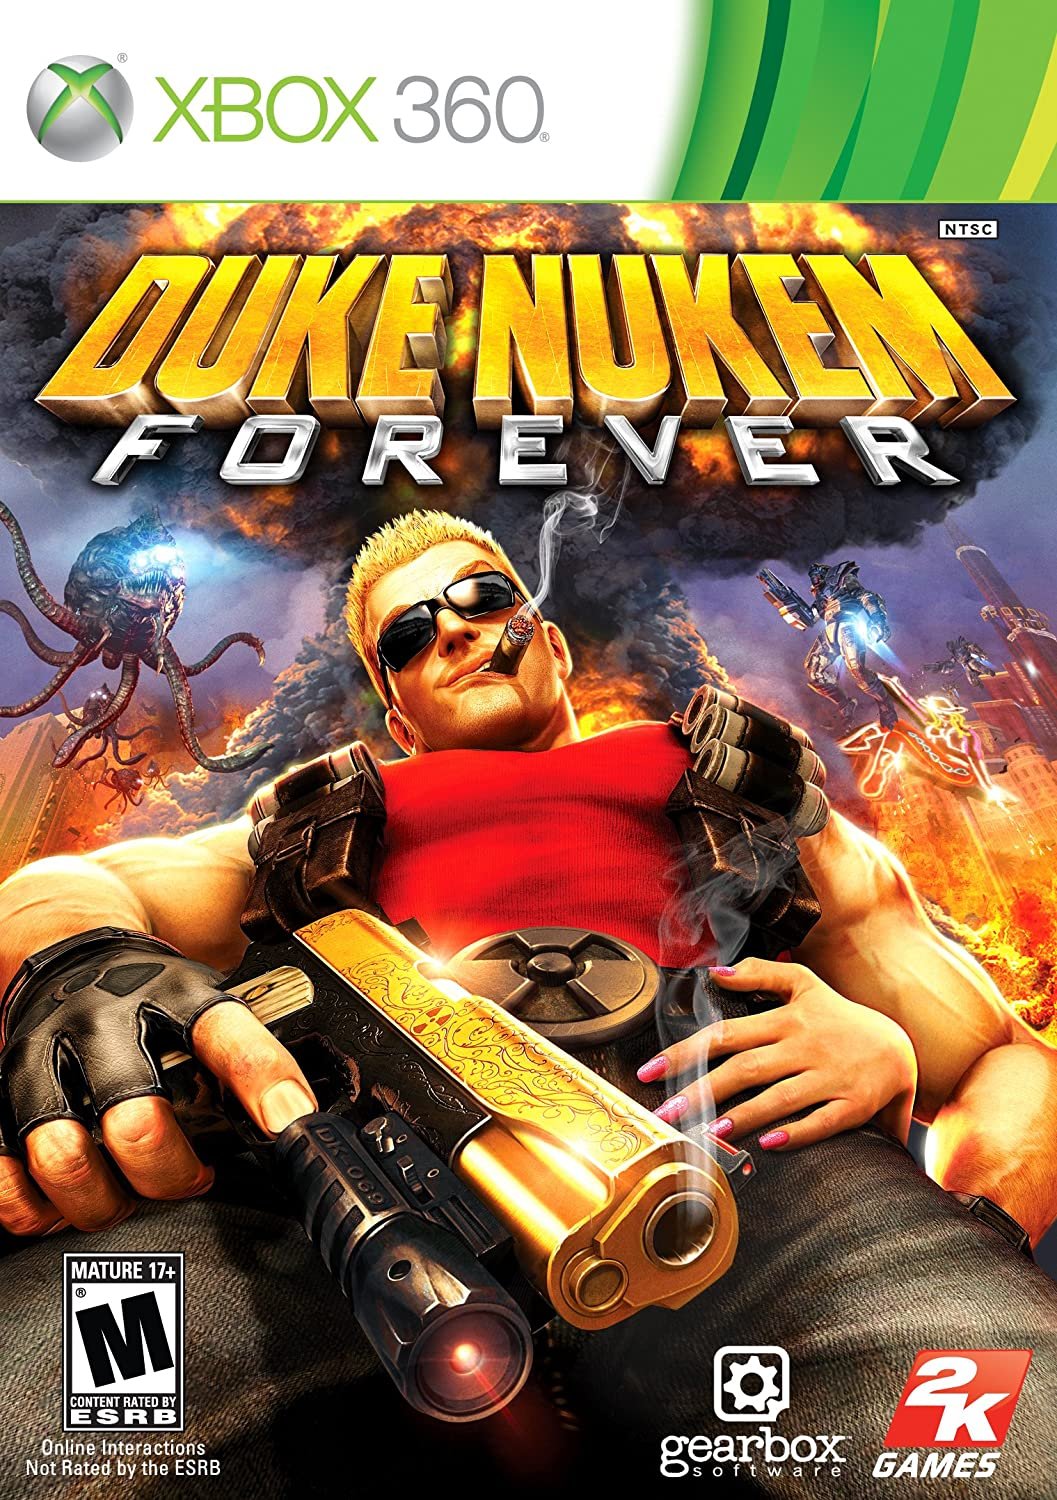 Duke Nukem Forever Xbox 360 Take 2 Video Games